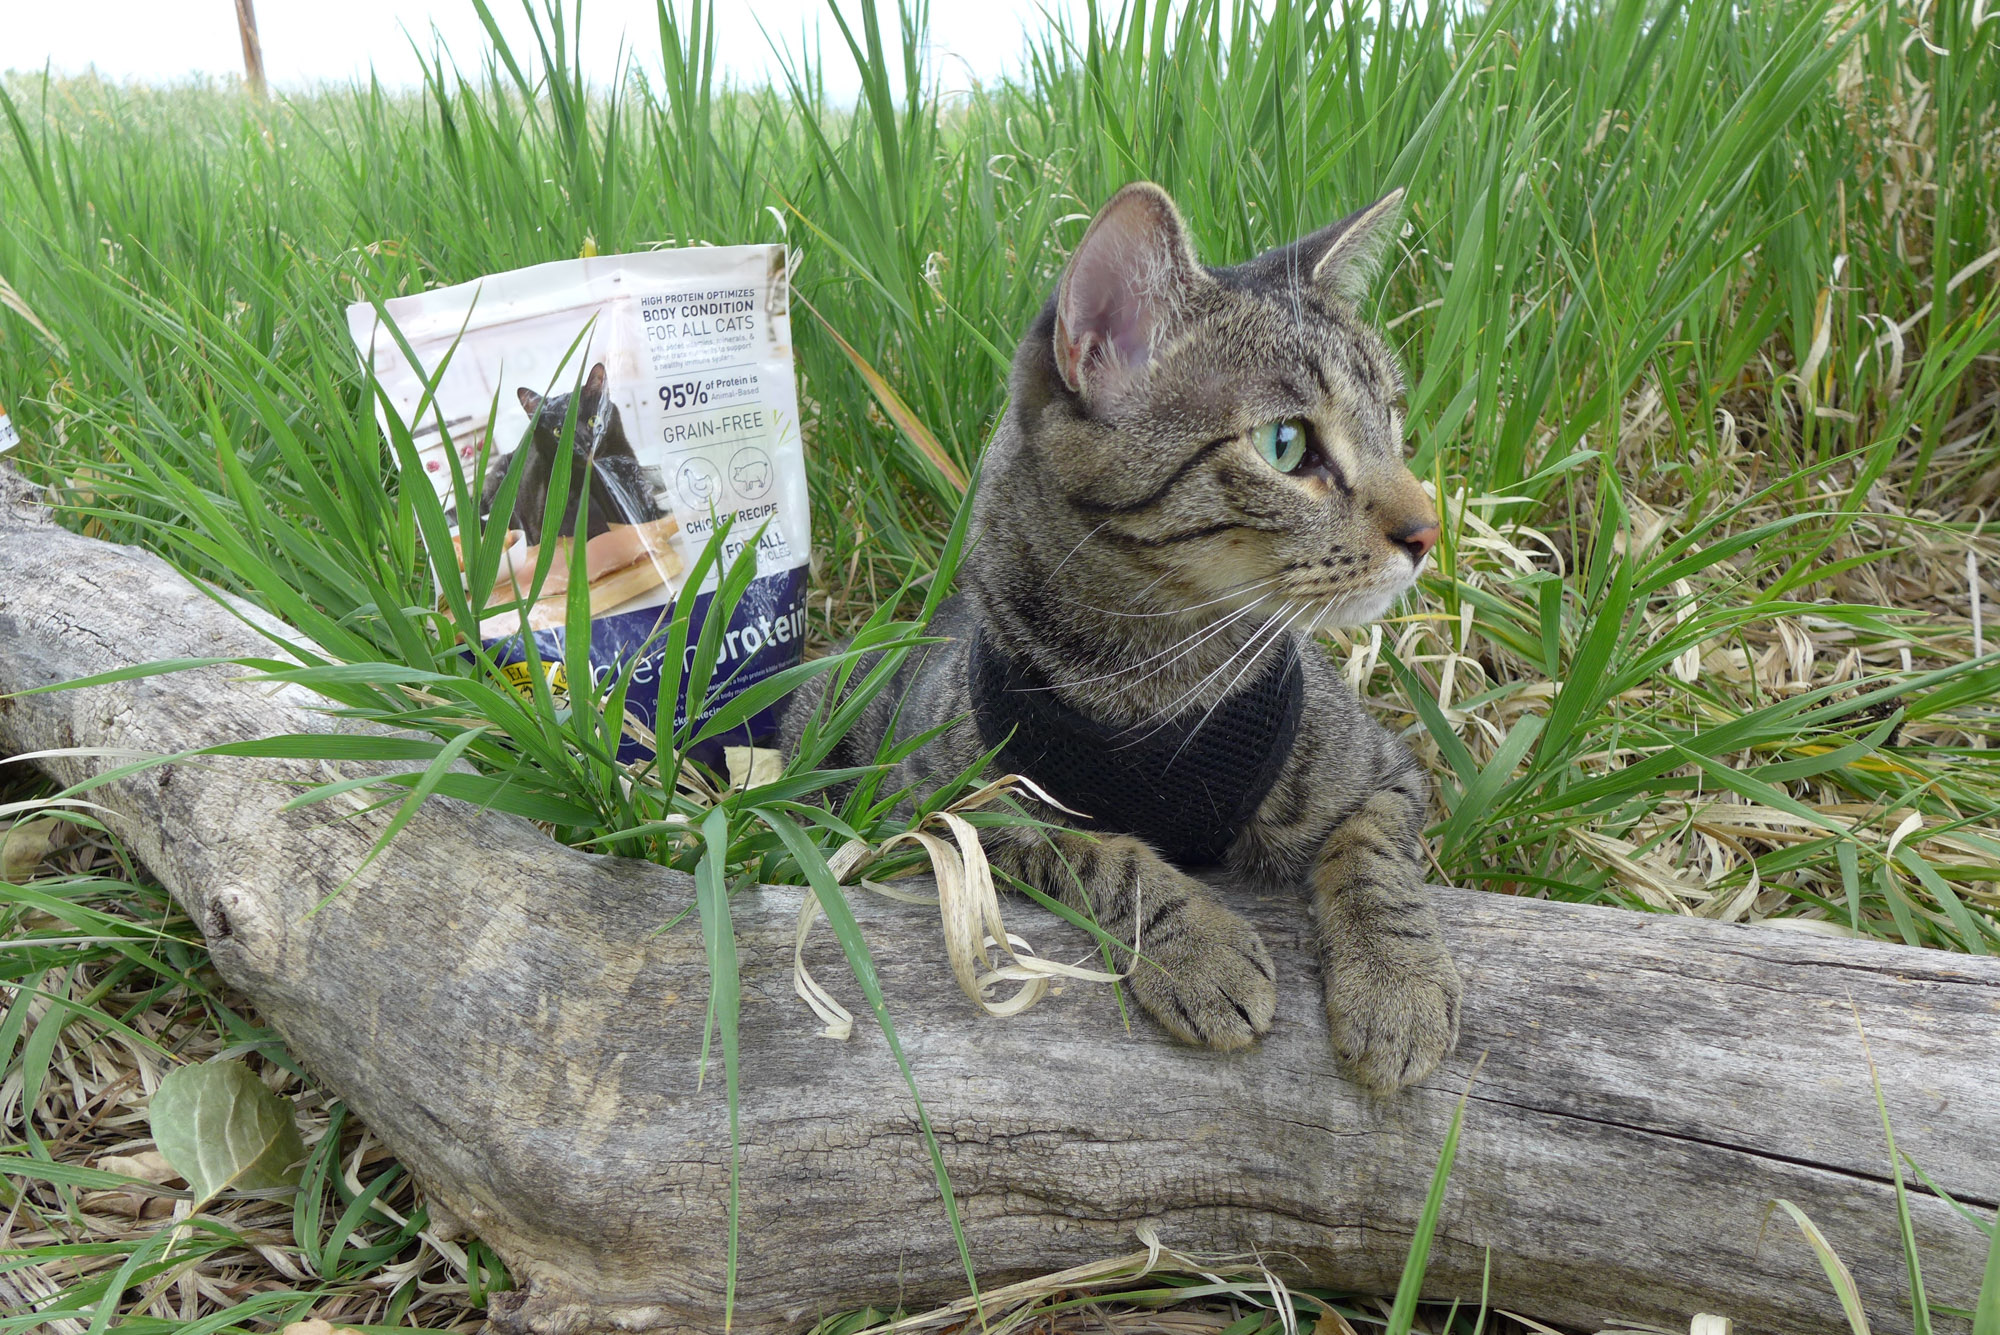 Dr. Elsey's cleanprotein cat food